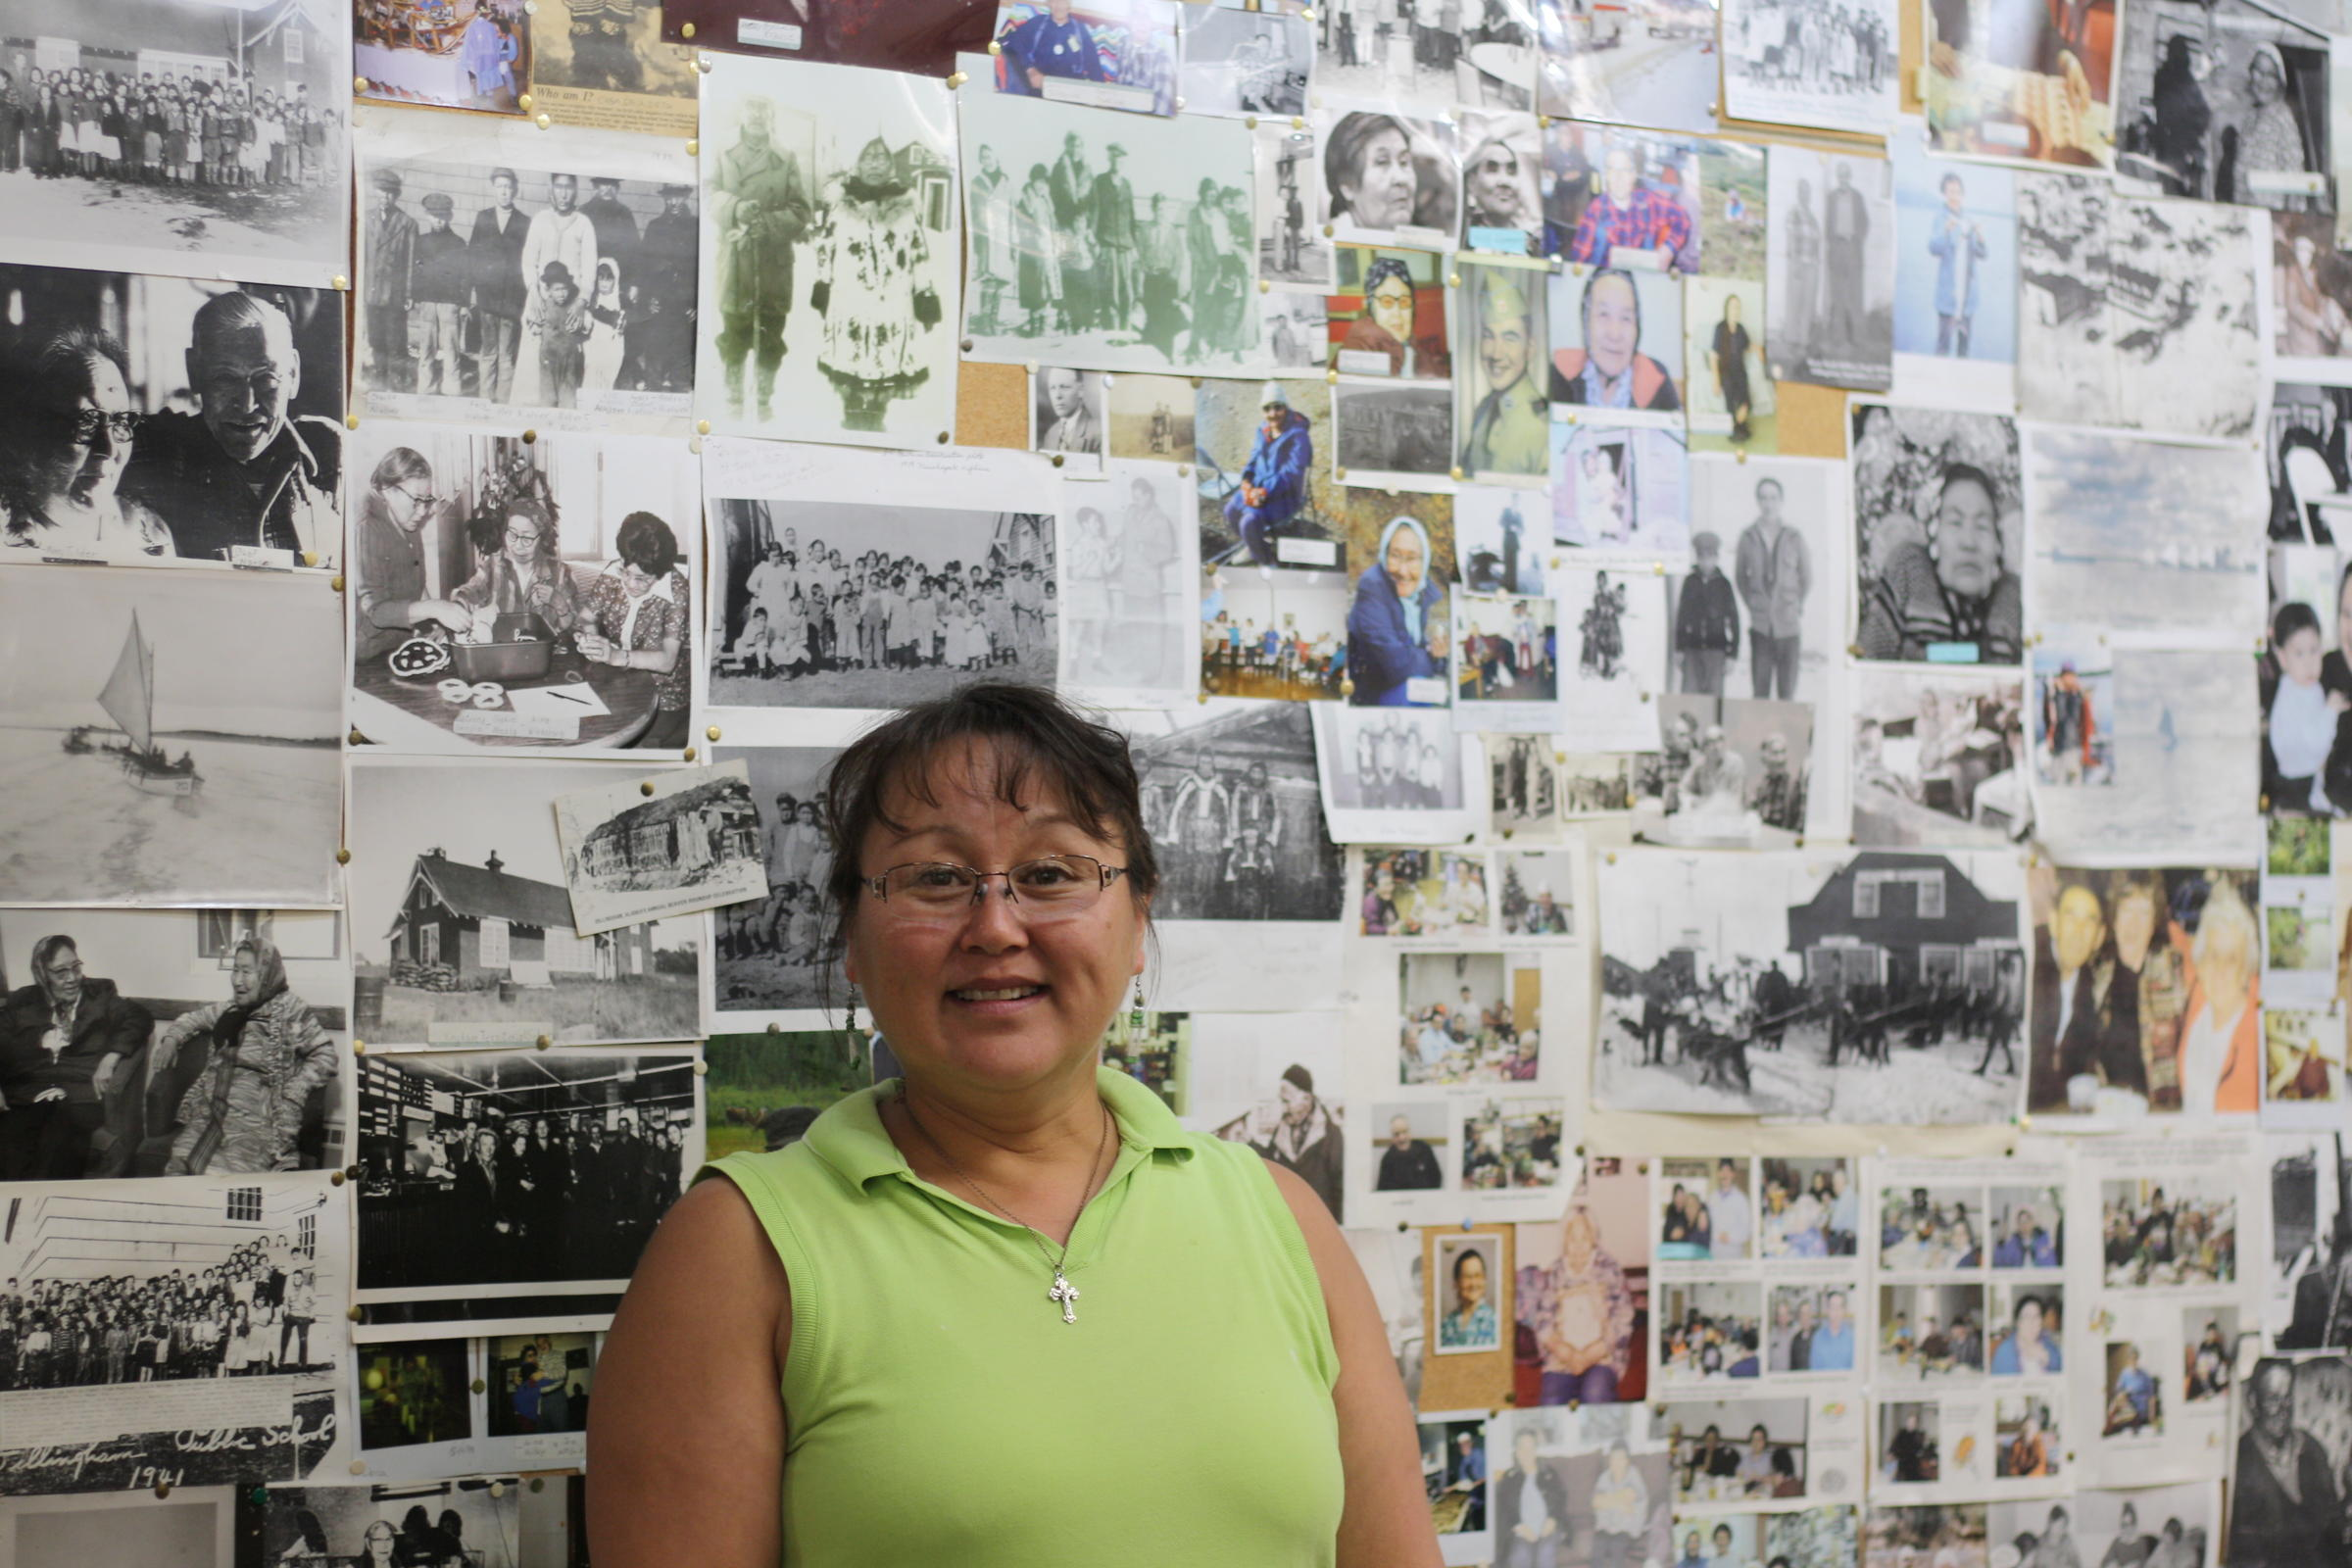 Dillingham Senior Center director Ida Noonkesser stands before a board of memories. Photos of community elders are displayed from years past. Noonkesser was recently recognized for 17 years of service at the center. (Photo by Zoey Laird/KDLG)